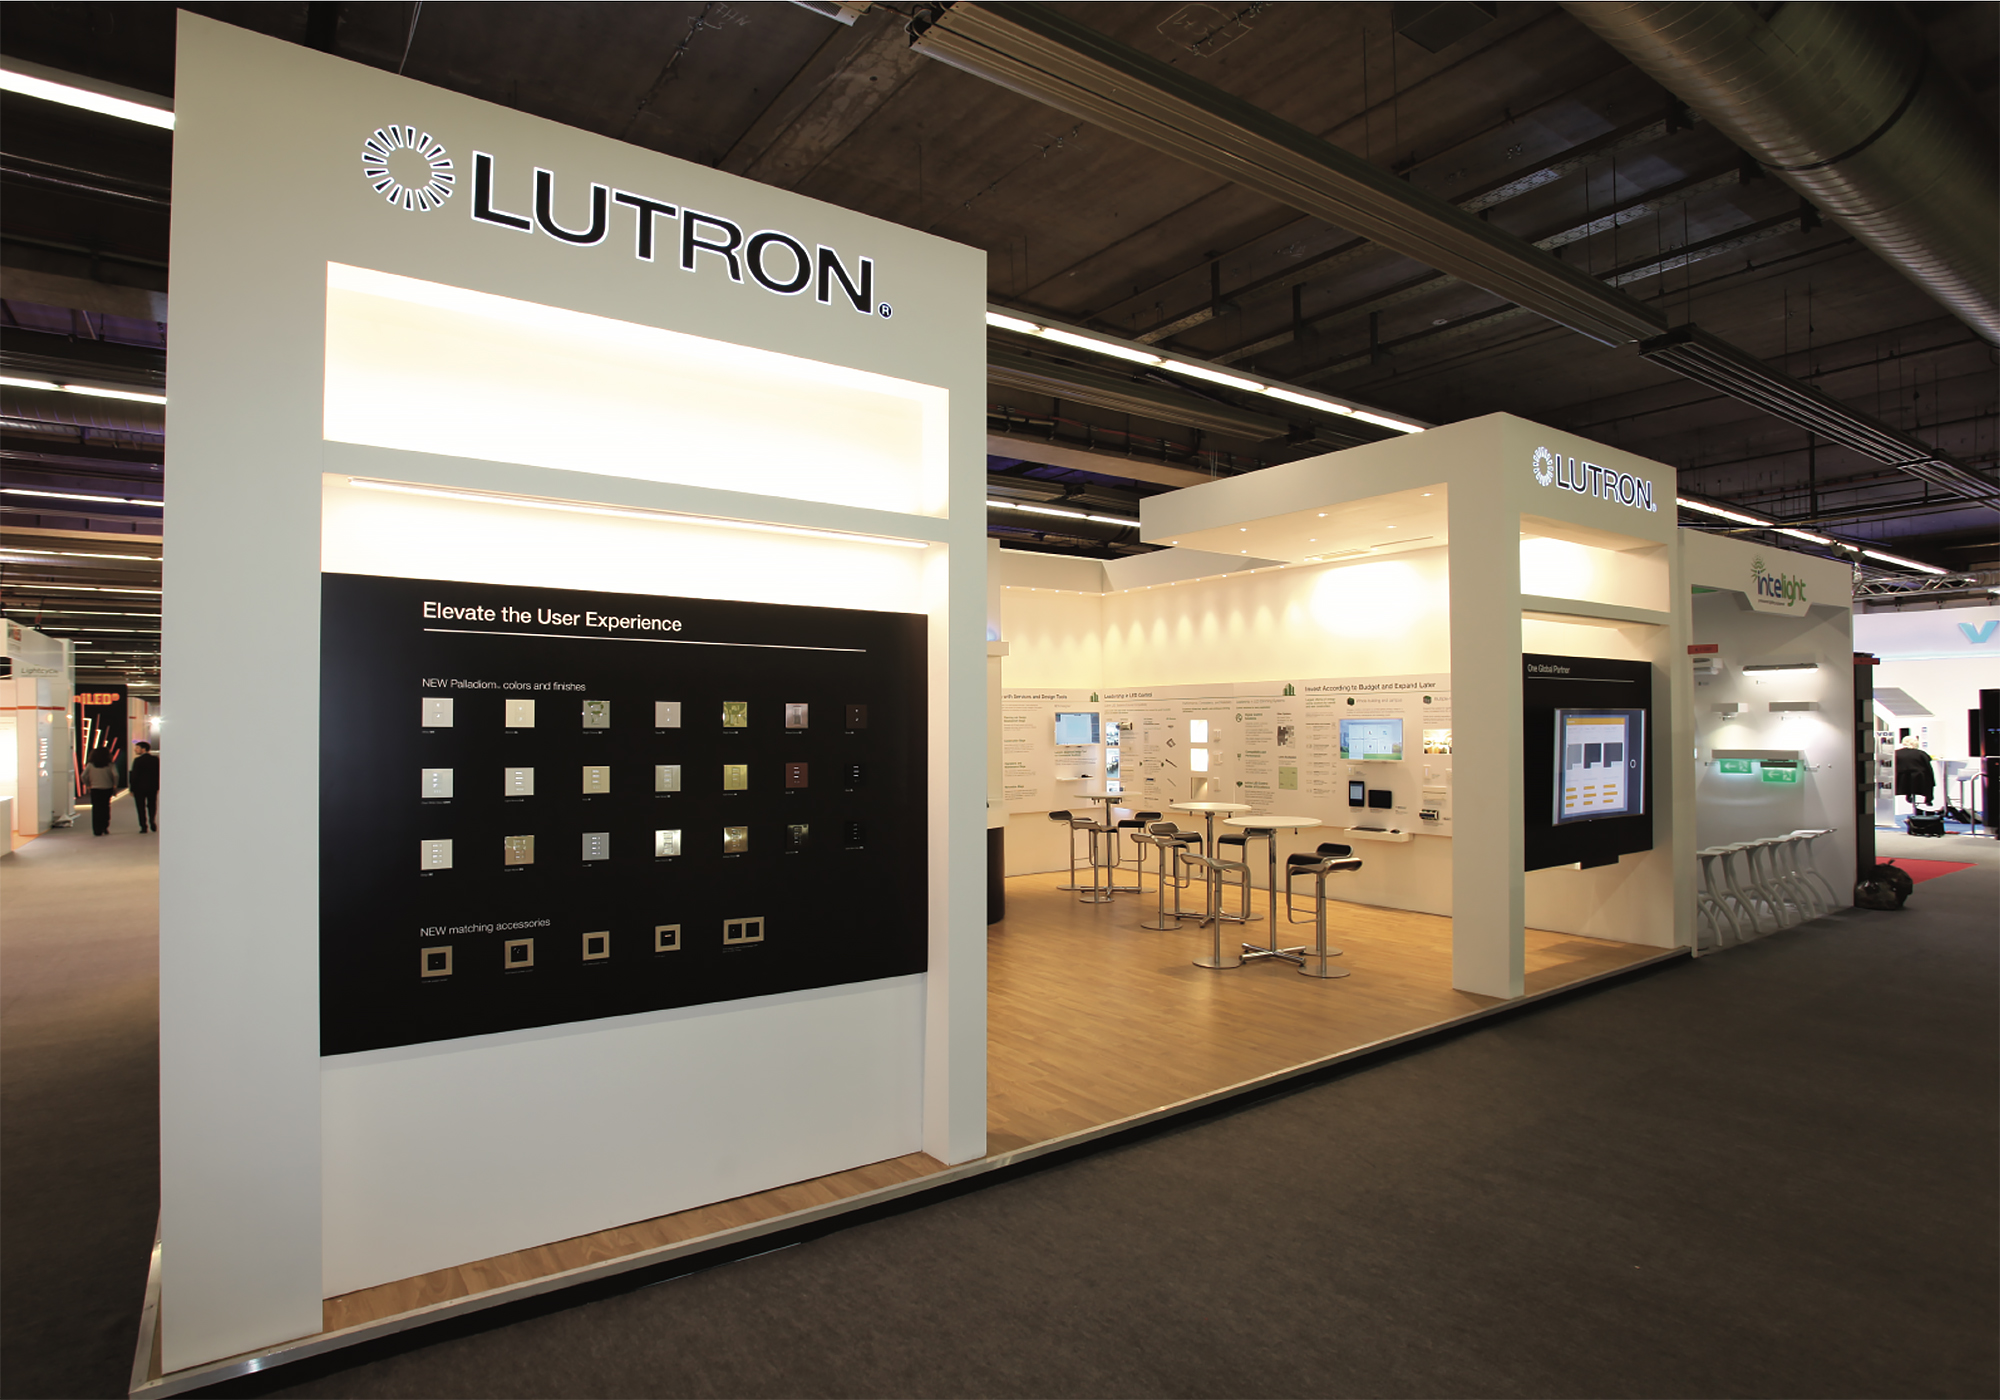 Lutron exhibition stand